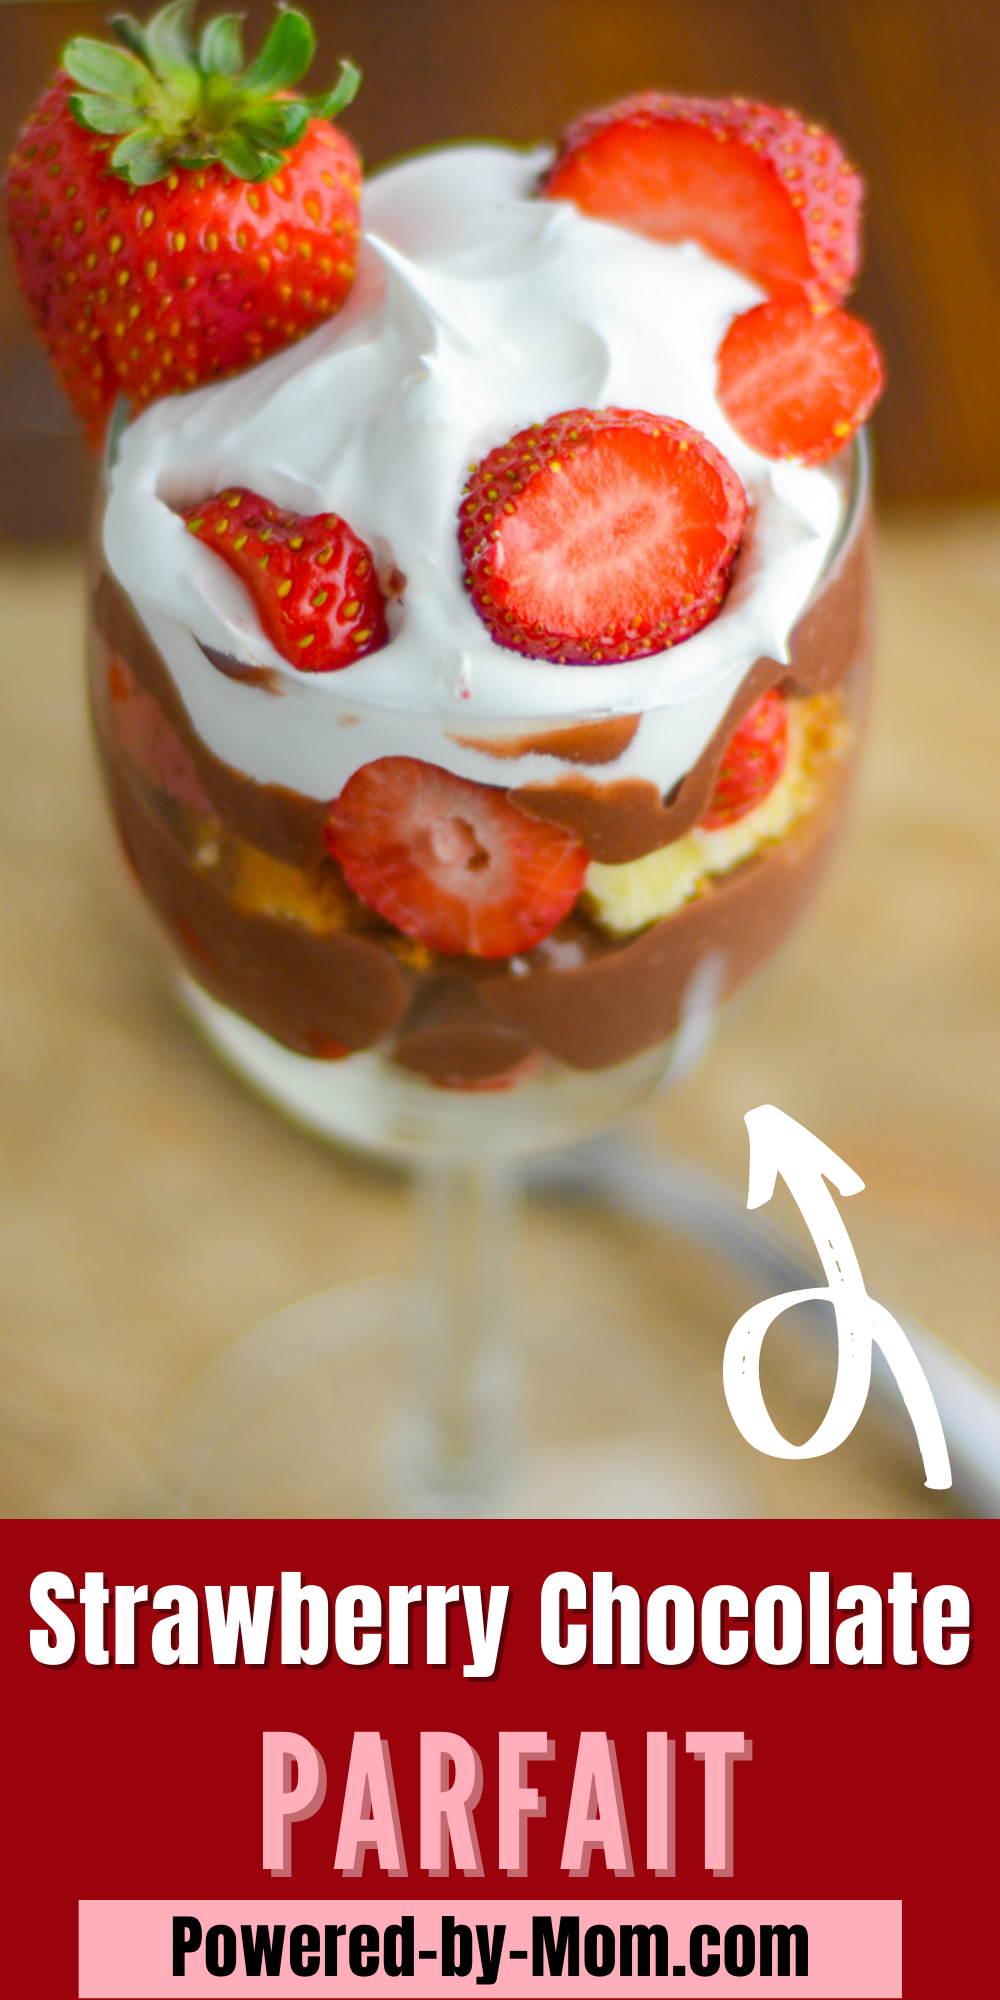 Enjoy this easy peasy dessert that looks like you slaved for hours over it. This Strawberry chocolate parfait dessert is delicious and great for any occasion.